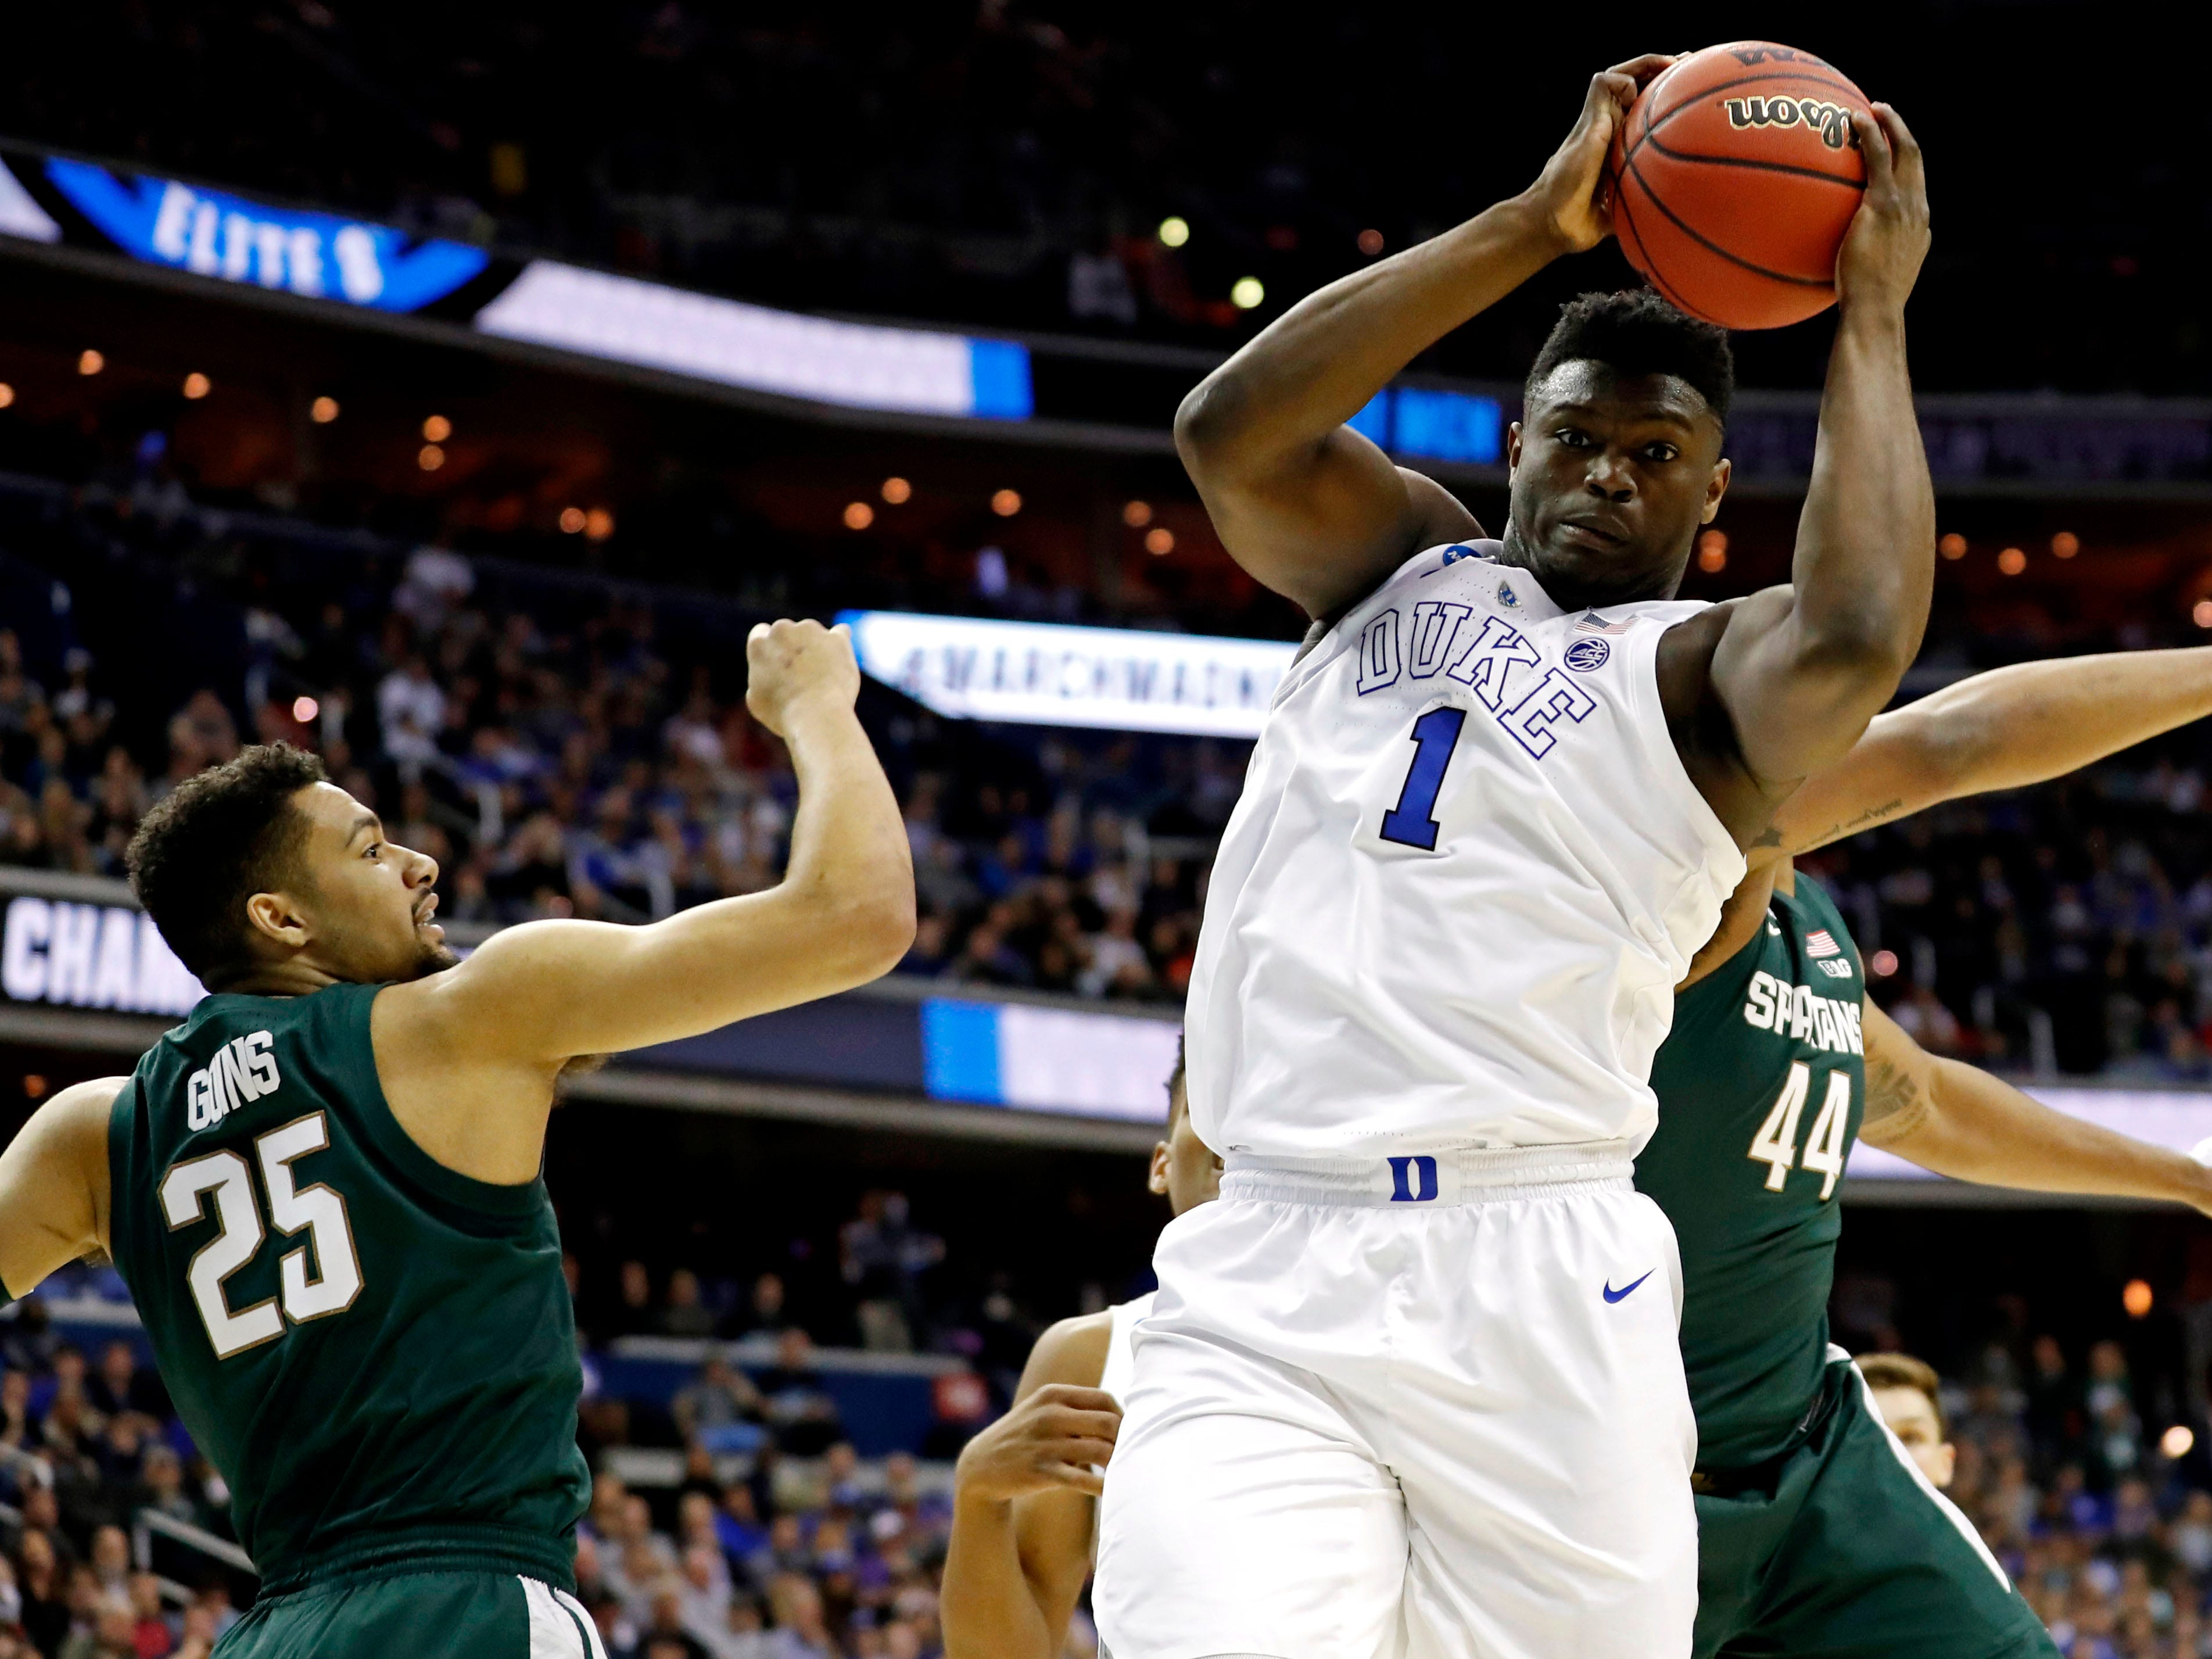 Duke Blue Devils forward Zion Williamson (1) grabs a rebound against Michigan State Spartans forward Nick Ward (44) and forward Kenny Goins (25) during the first half in the championship game of the east regional of the 2019 NCAA Tournament at Capital One Arena.